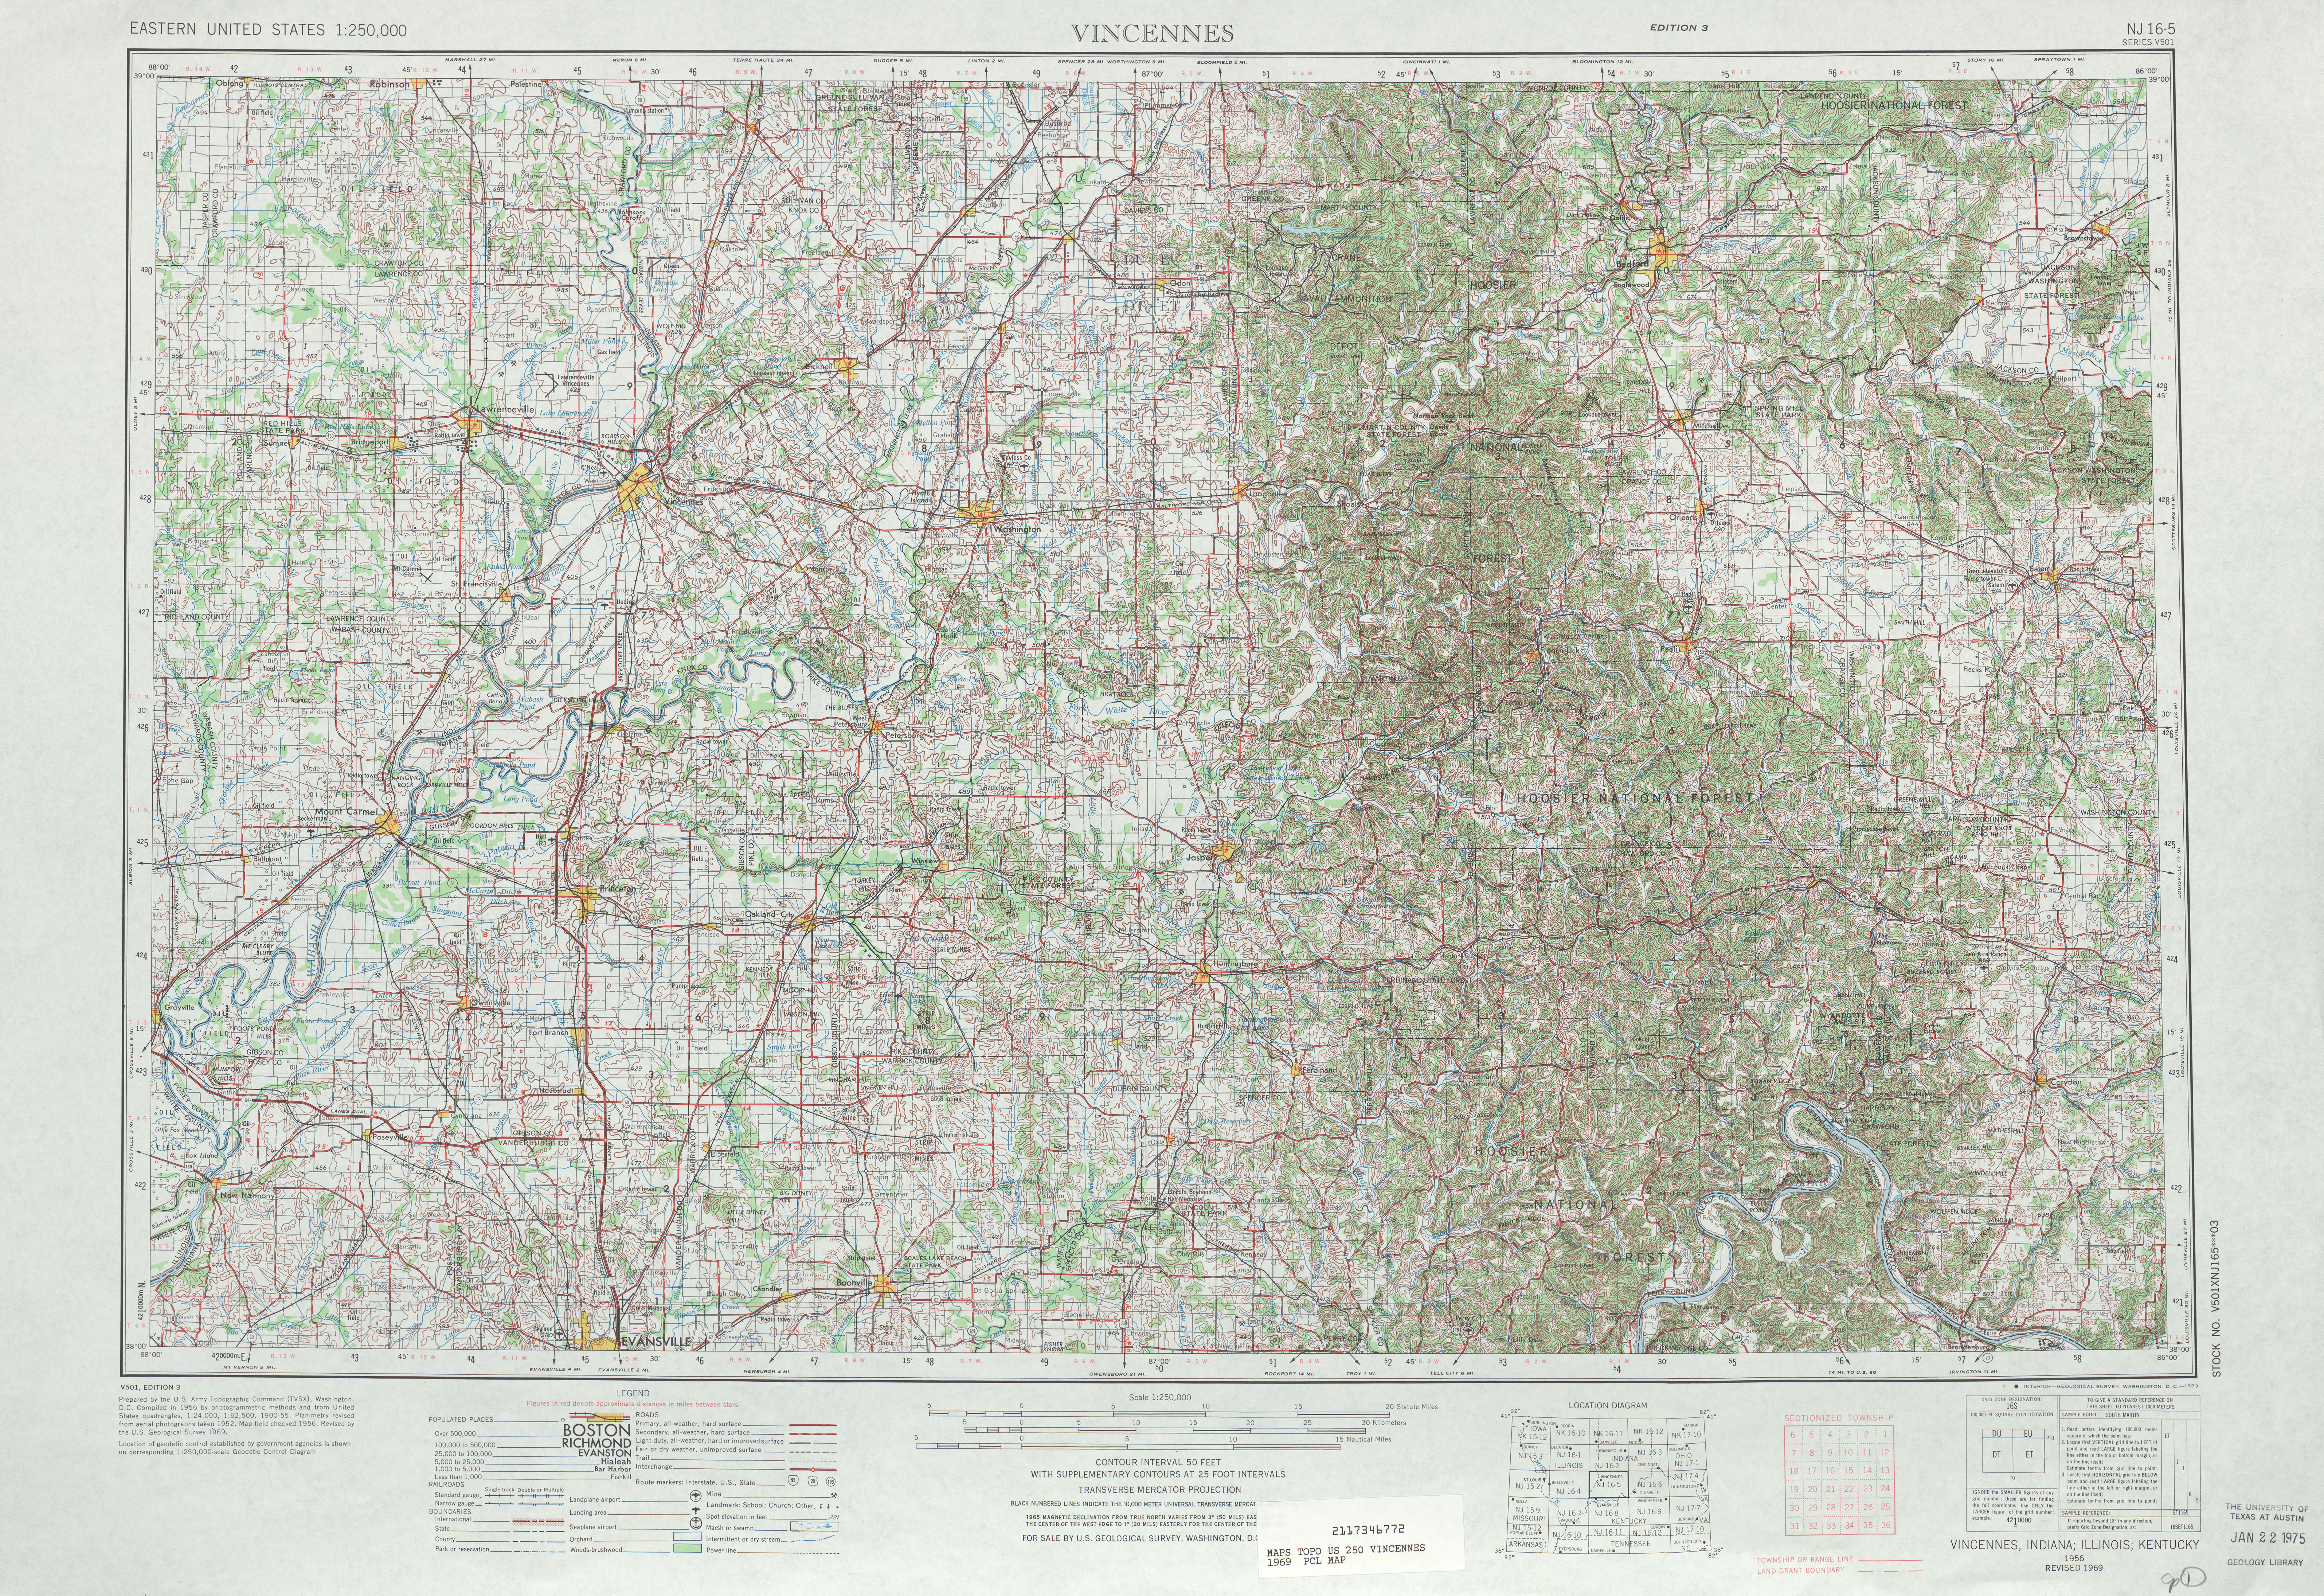 Vincennes Topographic Map Sheet, United States 1969